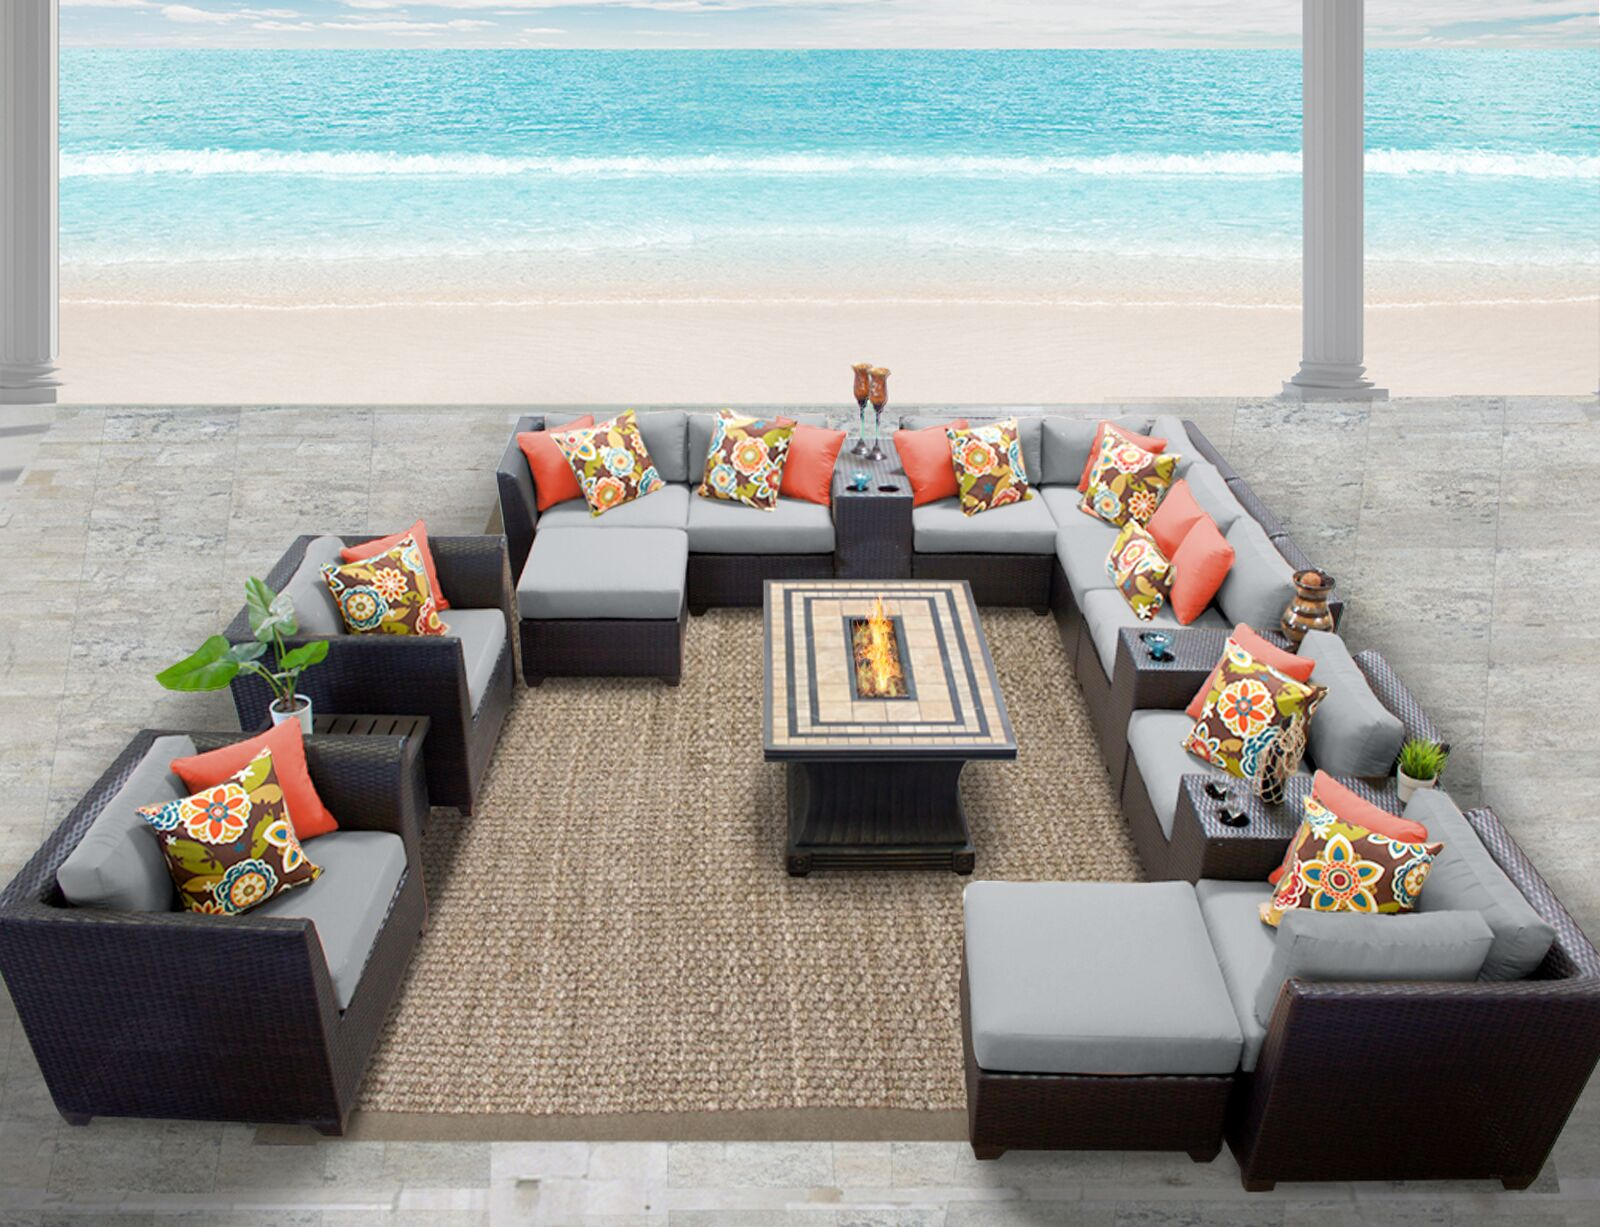 Barbados 17 Piece Rattan Sectional Set with Cushions Fabric: Gray